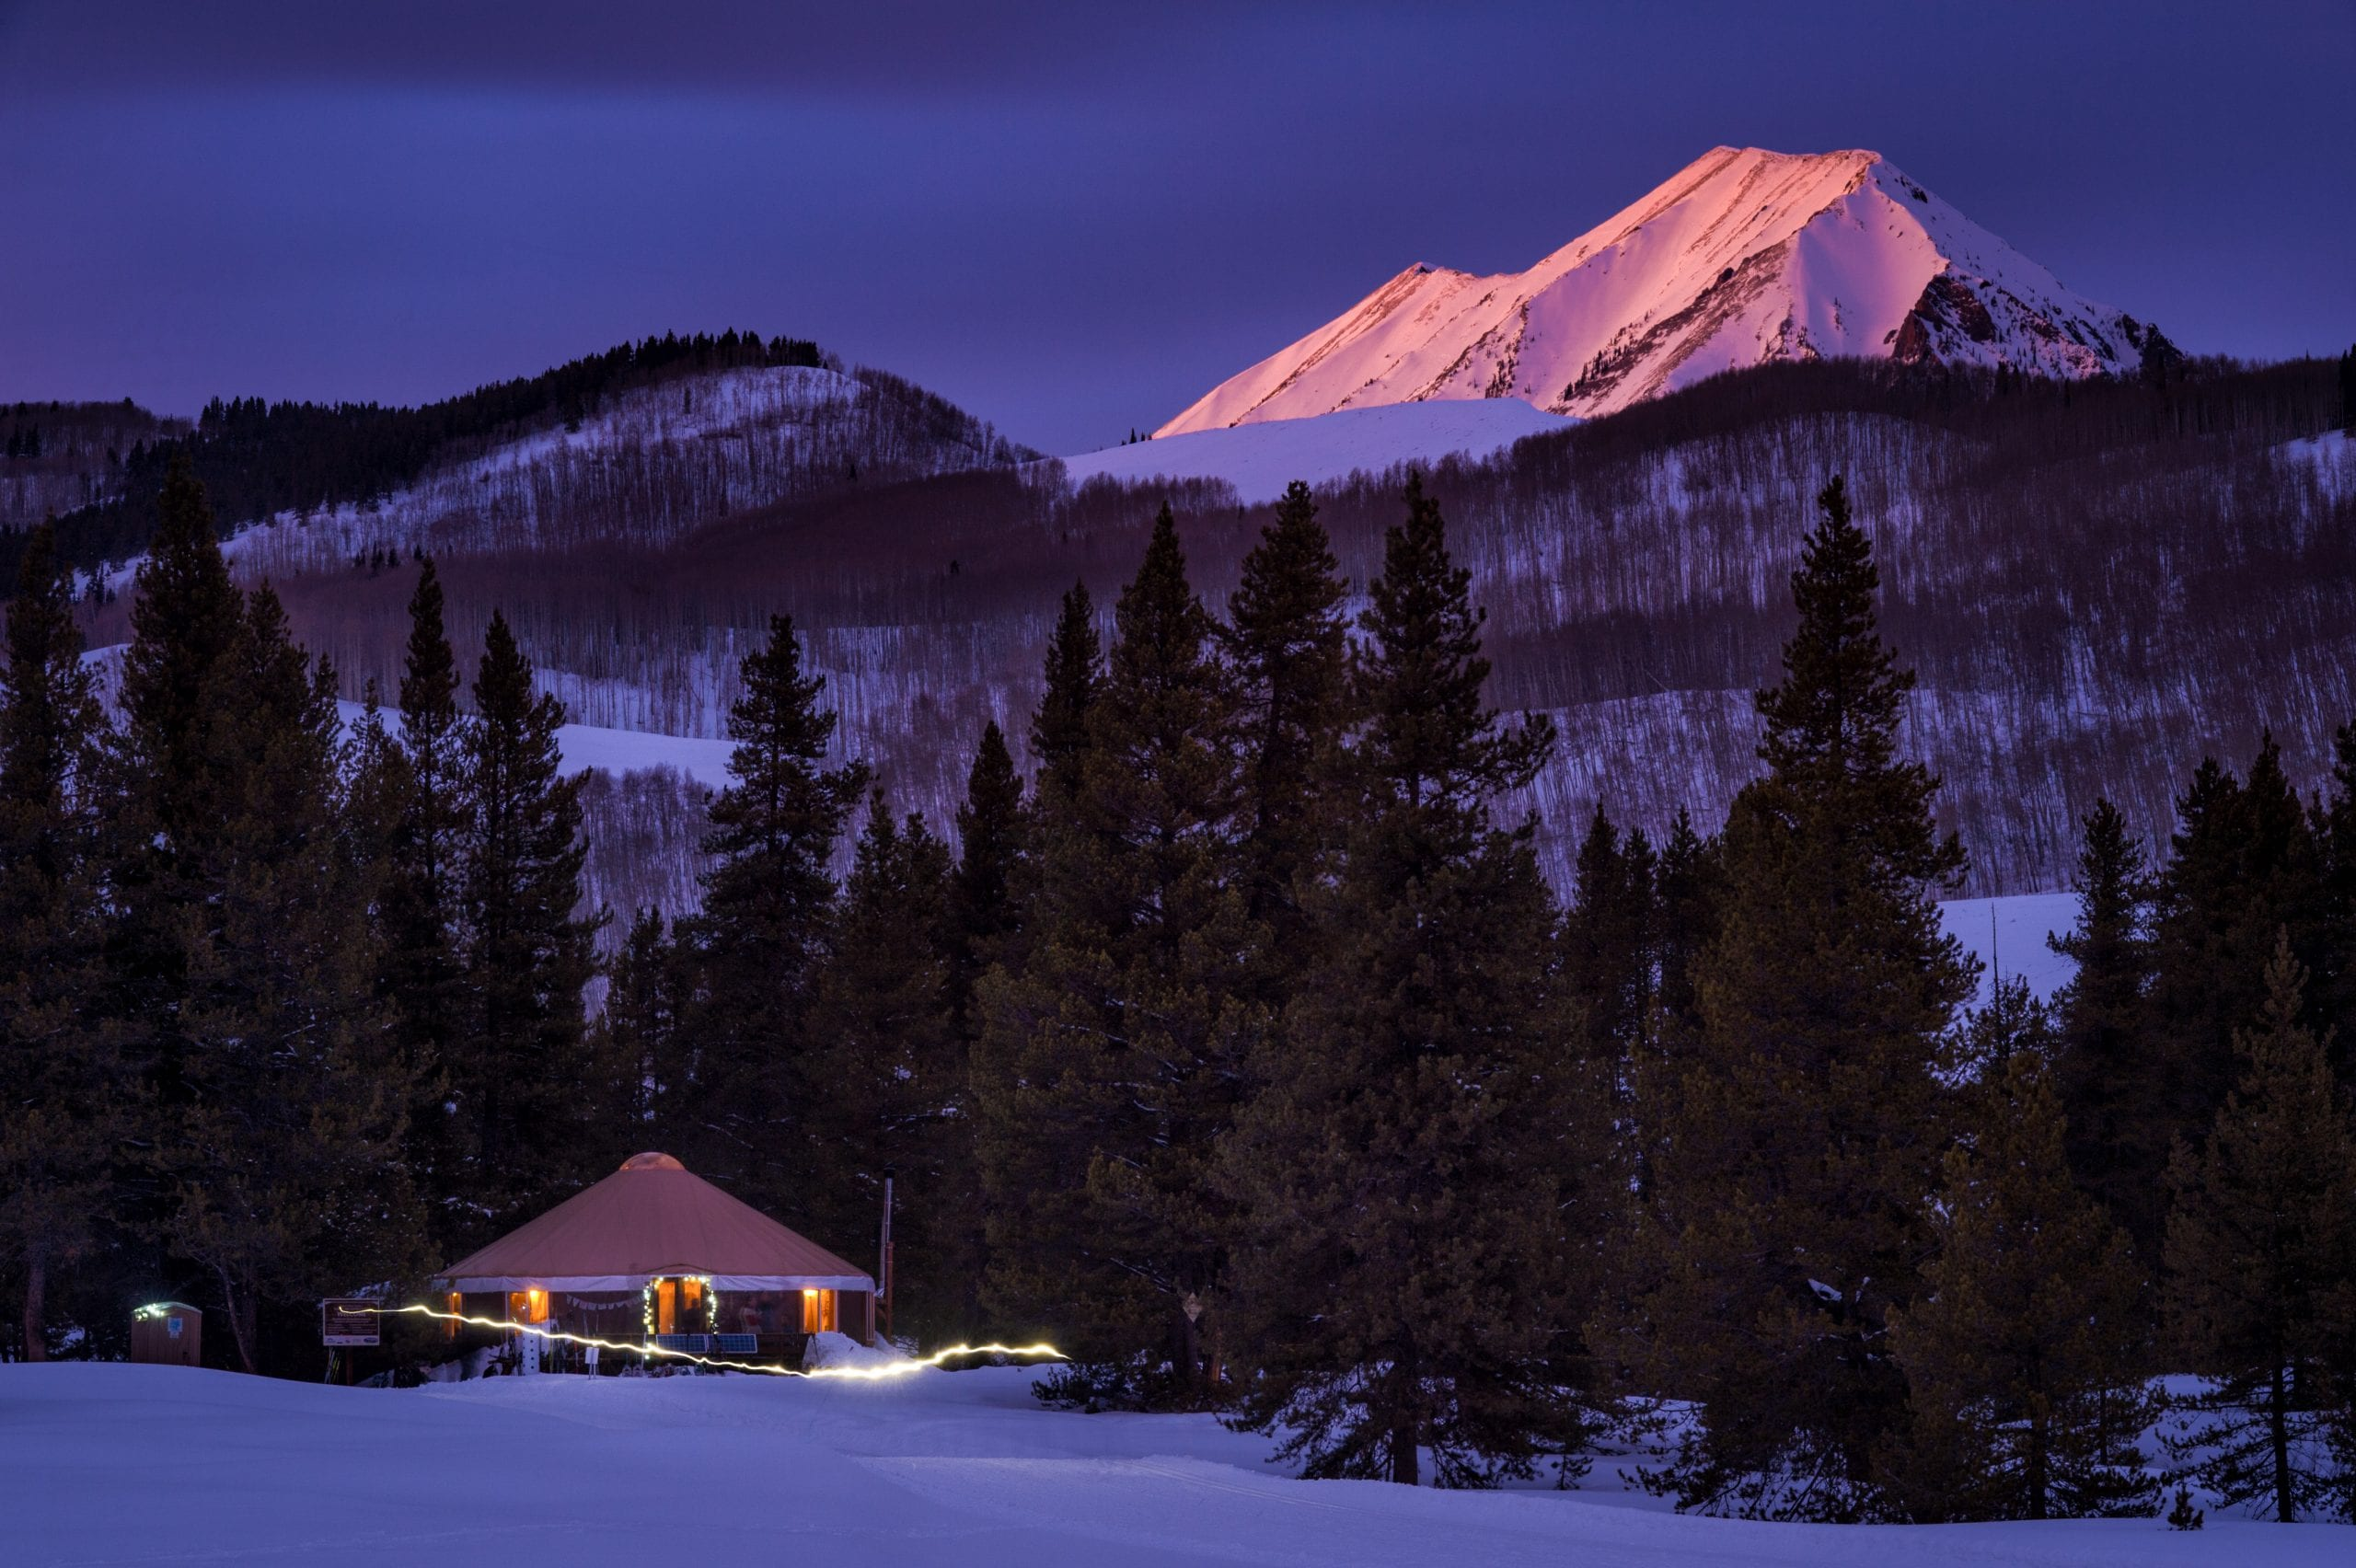 Sunset on Gothic Mountain with Magic Meadows Yurt in foreground